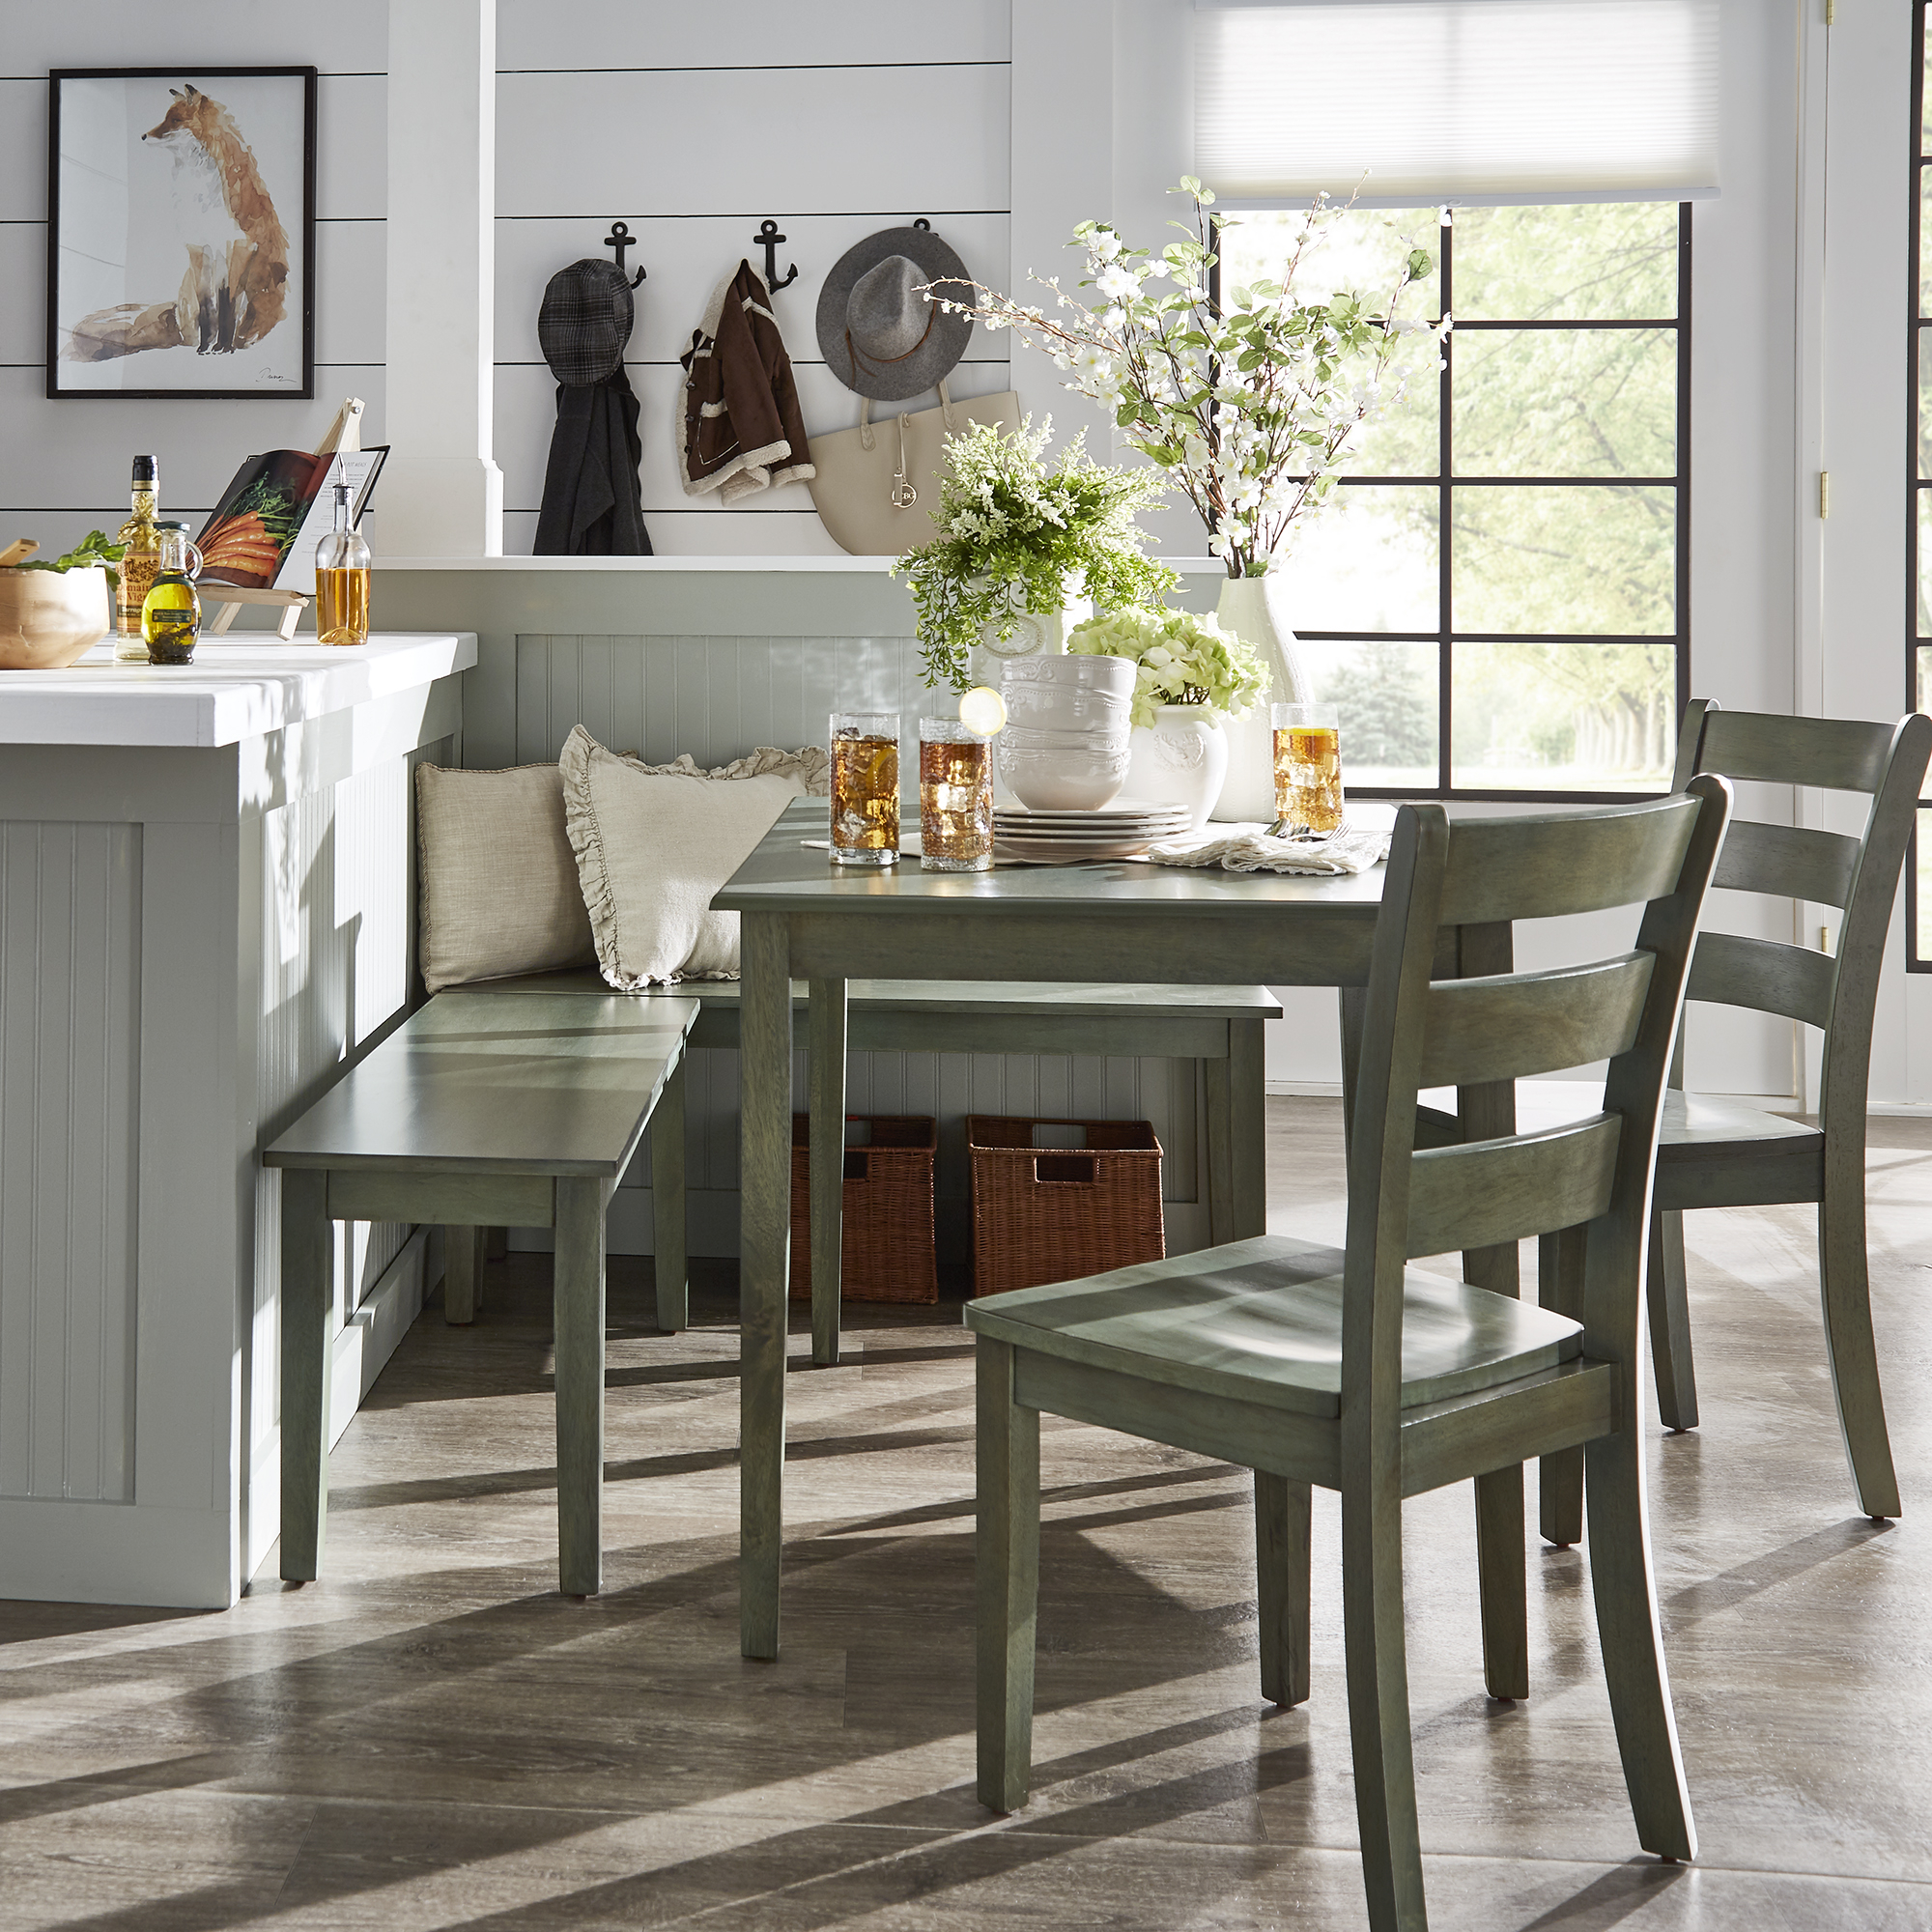 Weston Home Lexington 5 Piece Breakfast Nook Dining Set, Rectangular Table, Multiple Colors Inside Most Recently Released 5 Piece Breakfast Nook Dining Sets (View 3 of 20)